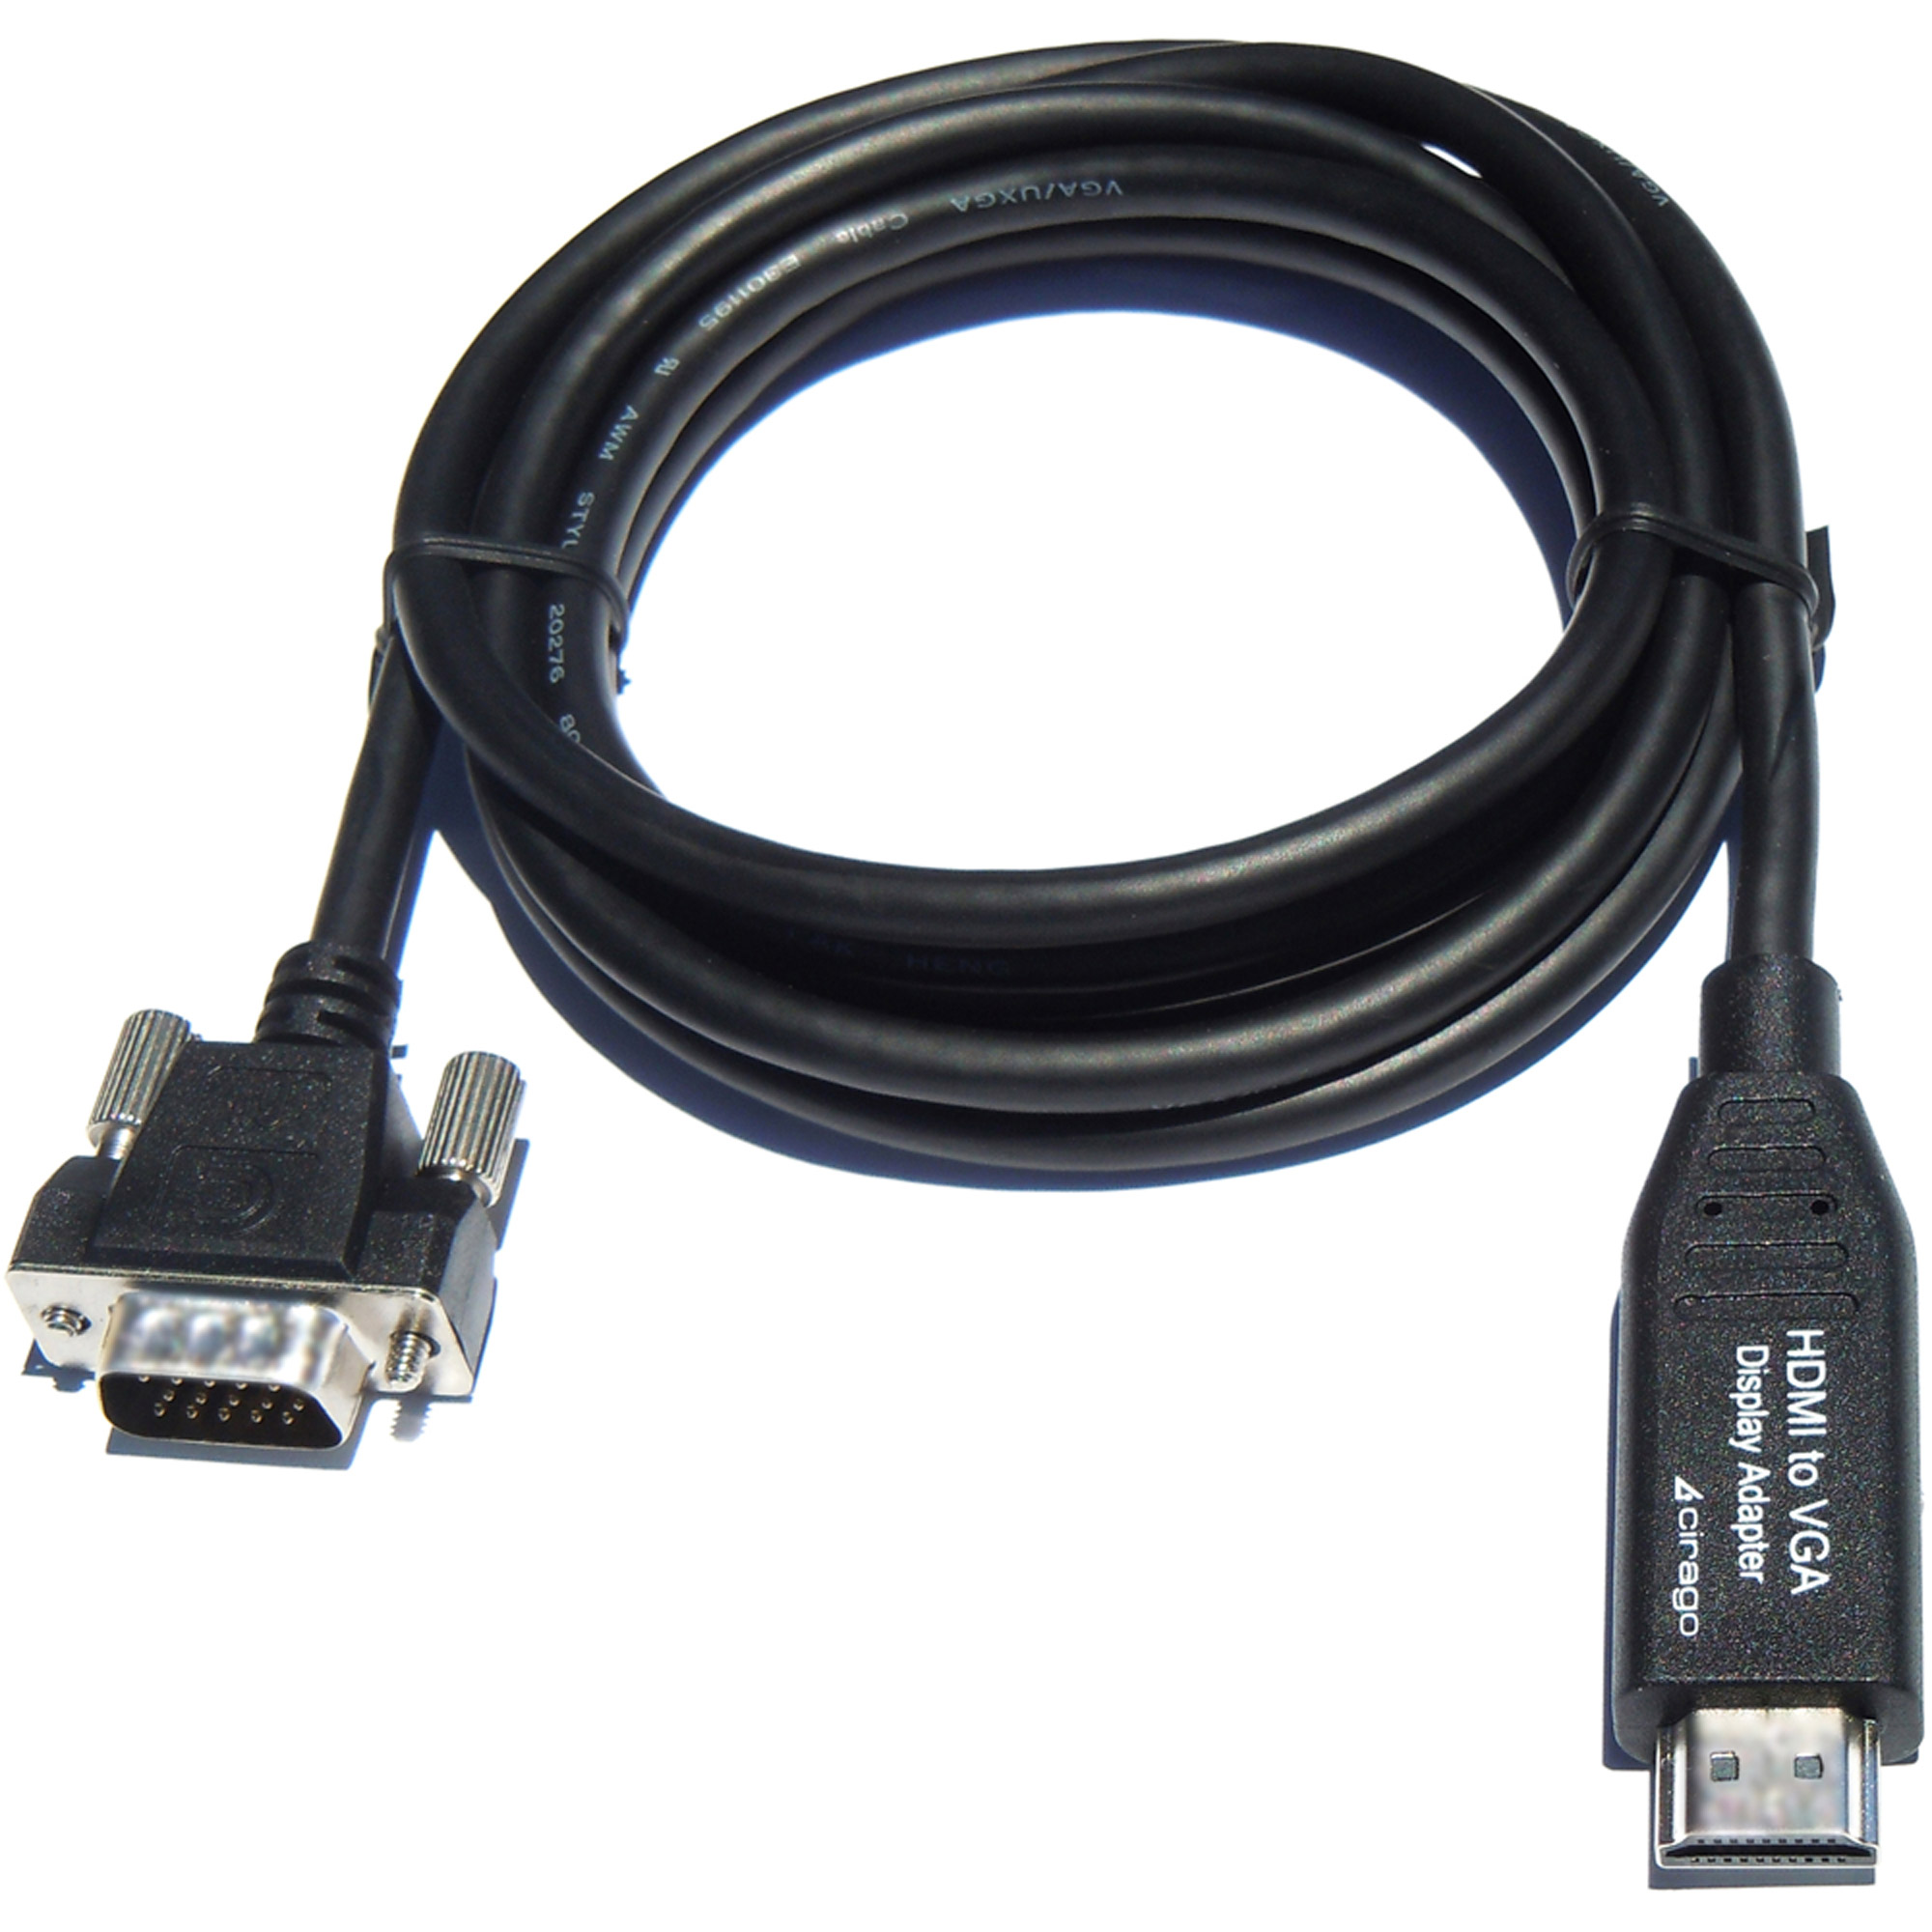 Cirago HDM2VGA06BLK HDMI to VGA Display Adapter Cable, 6', Black